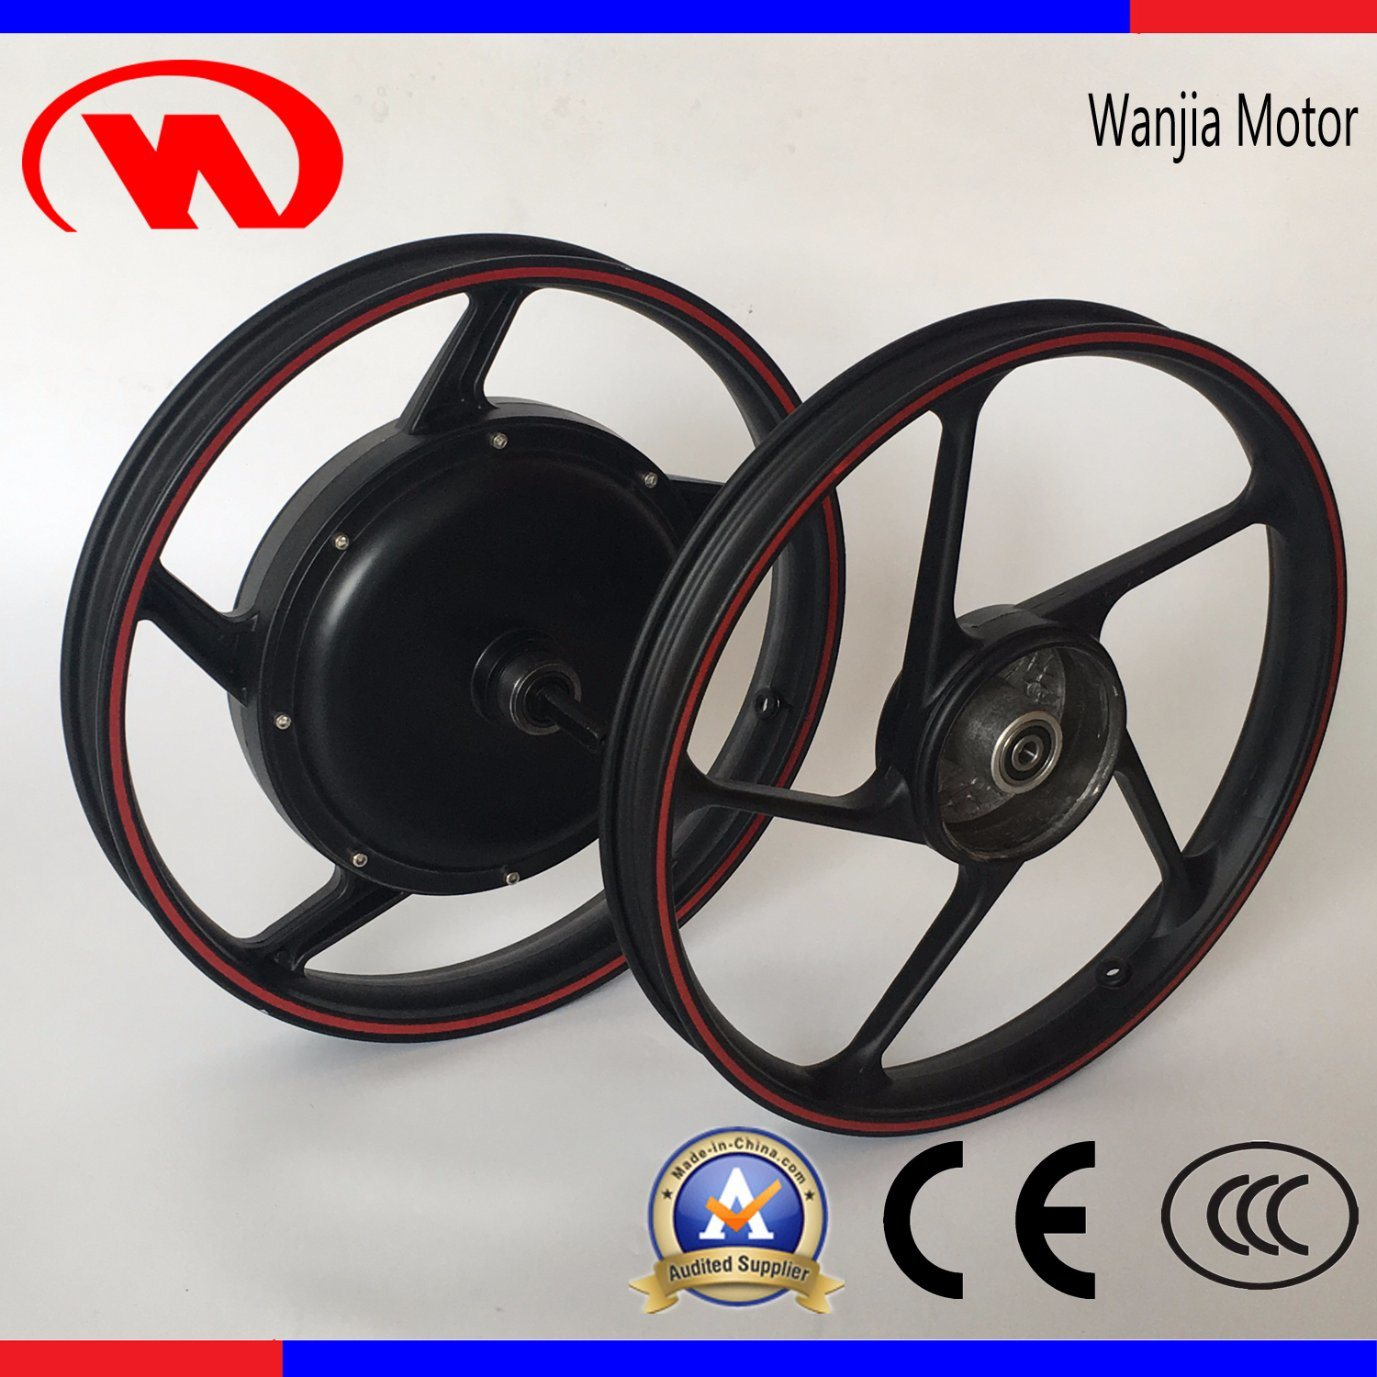 18 Inch DC Brushless Toothless Motor for YAMAHA Electric Bike